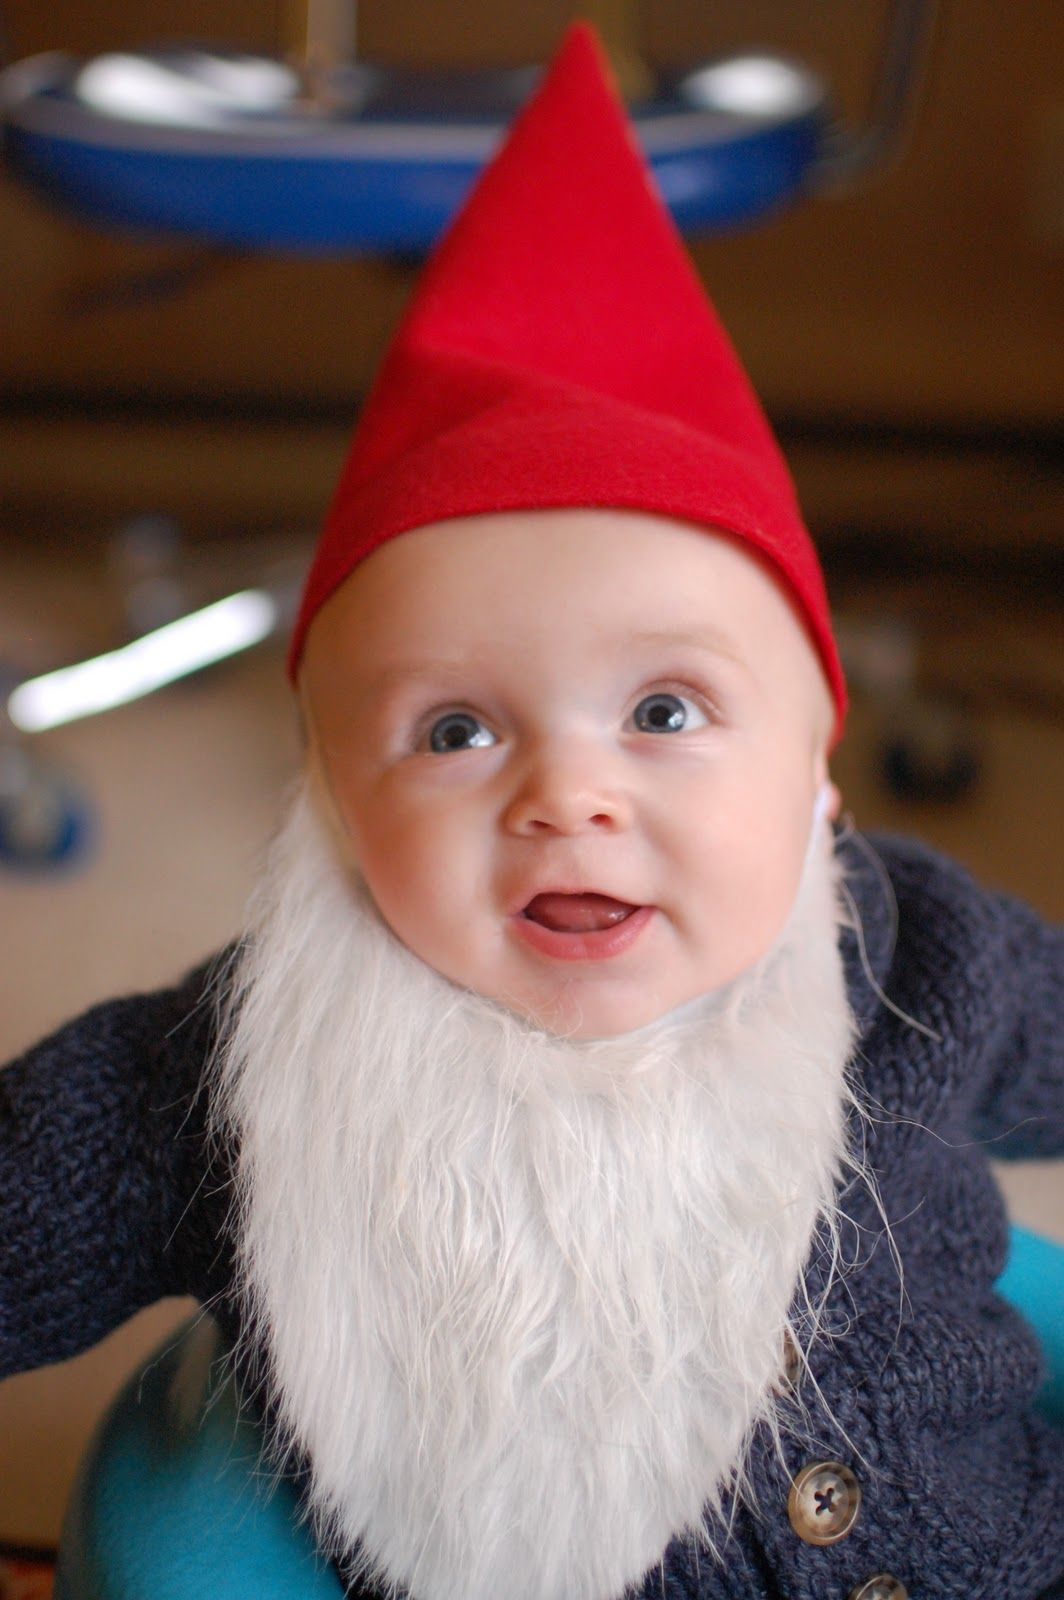 Baby Faschingskostüm Selber Machen Diy Halloween Gnome Costume For Your Baby Diy